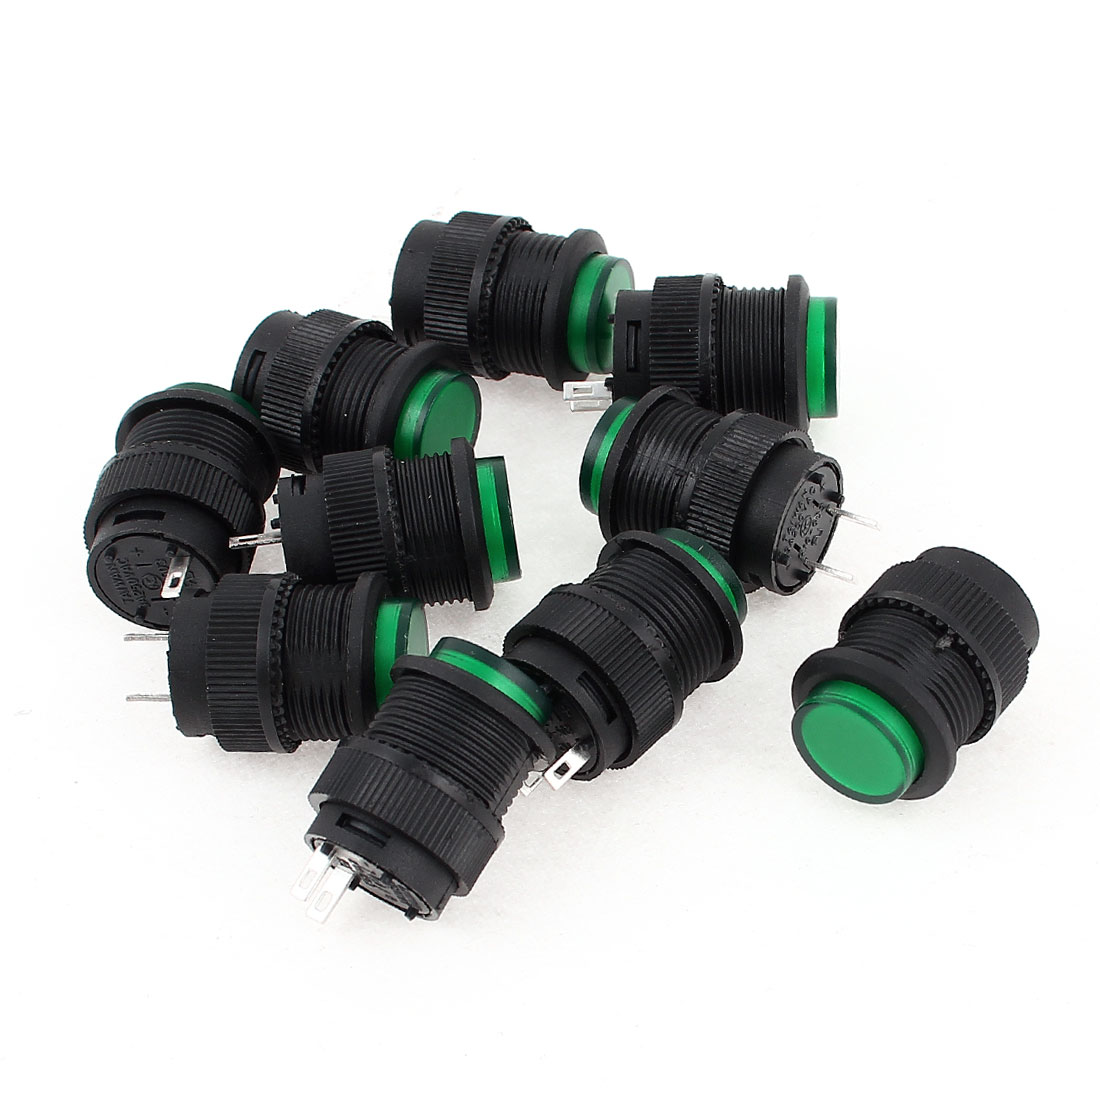 10 Pcs SPST Momentary Green Push Button Power Switch R16-503B AC 250V 3A